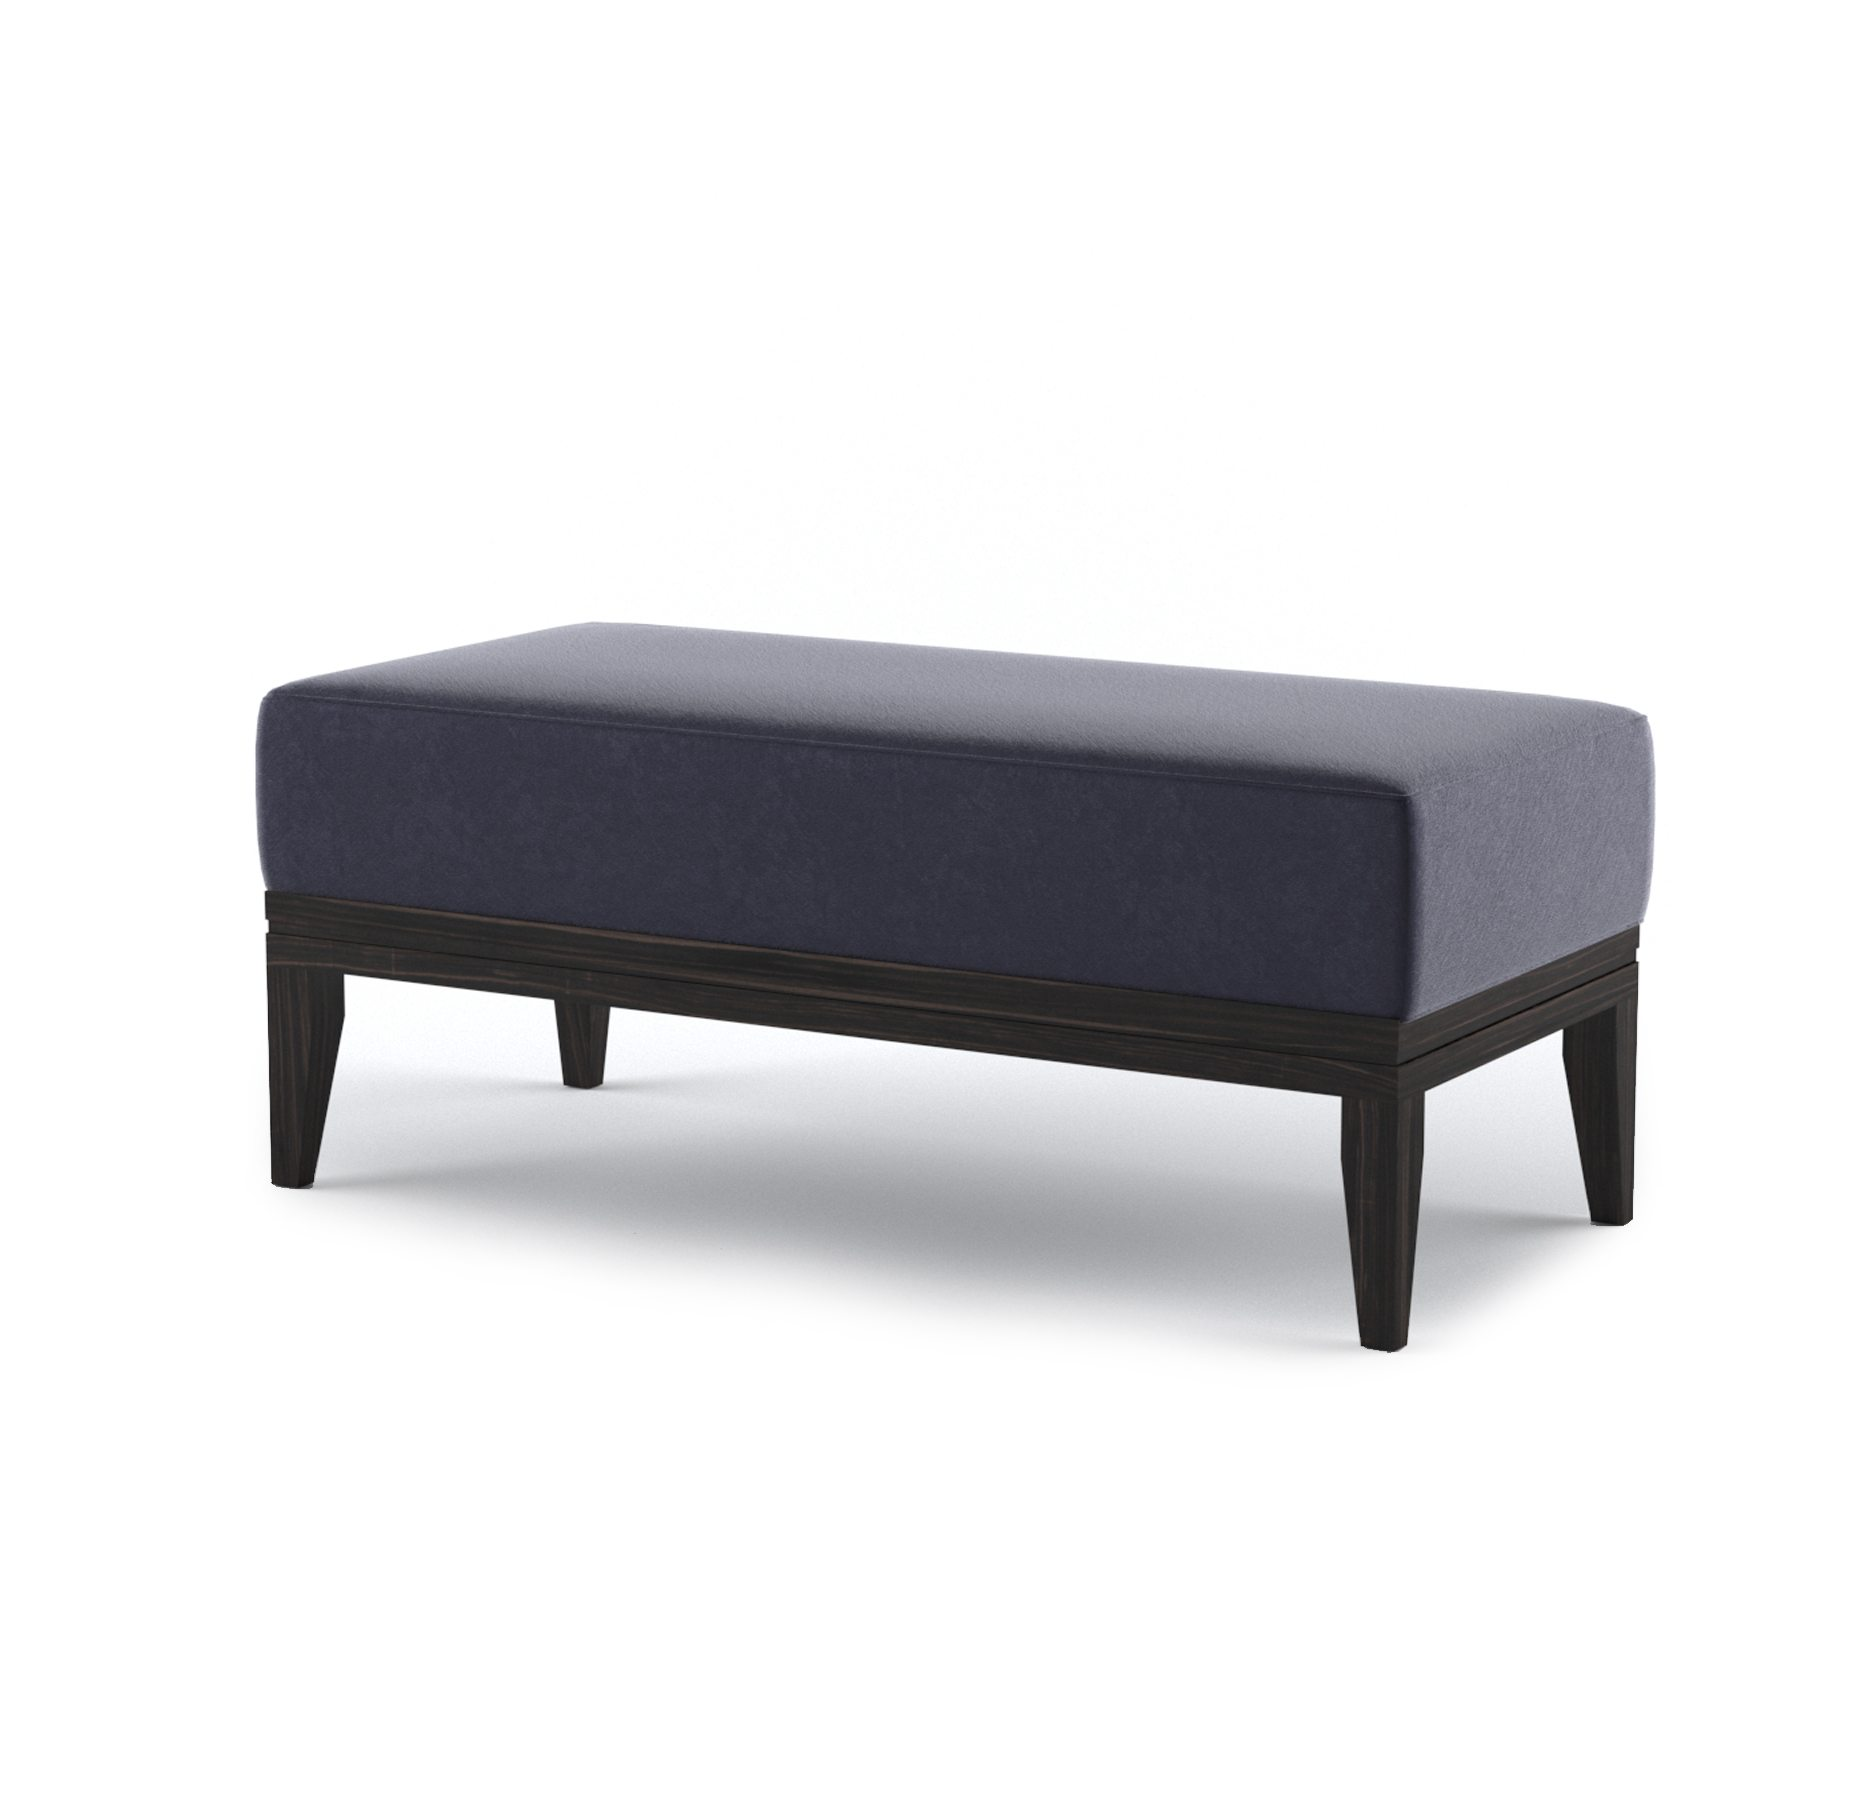 Dumas Bench 02 by Bonham & Bonham 08Dumas Bench 02 by Bonham & Bonham 08